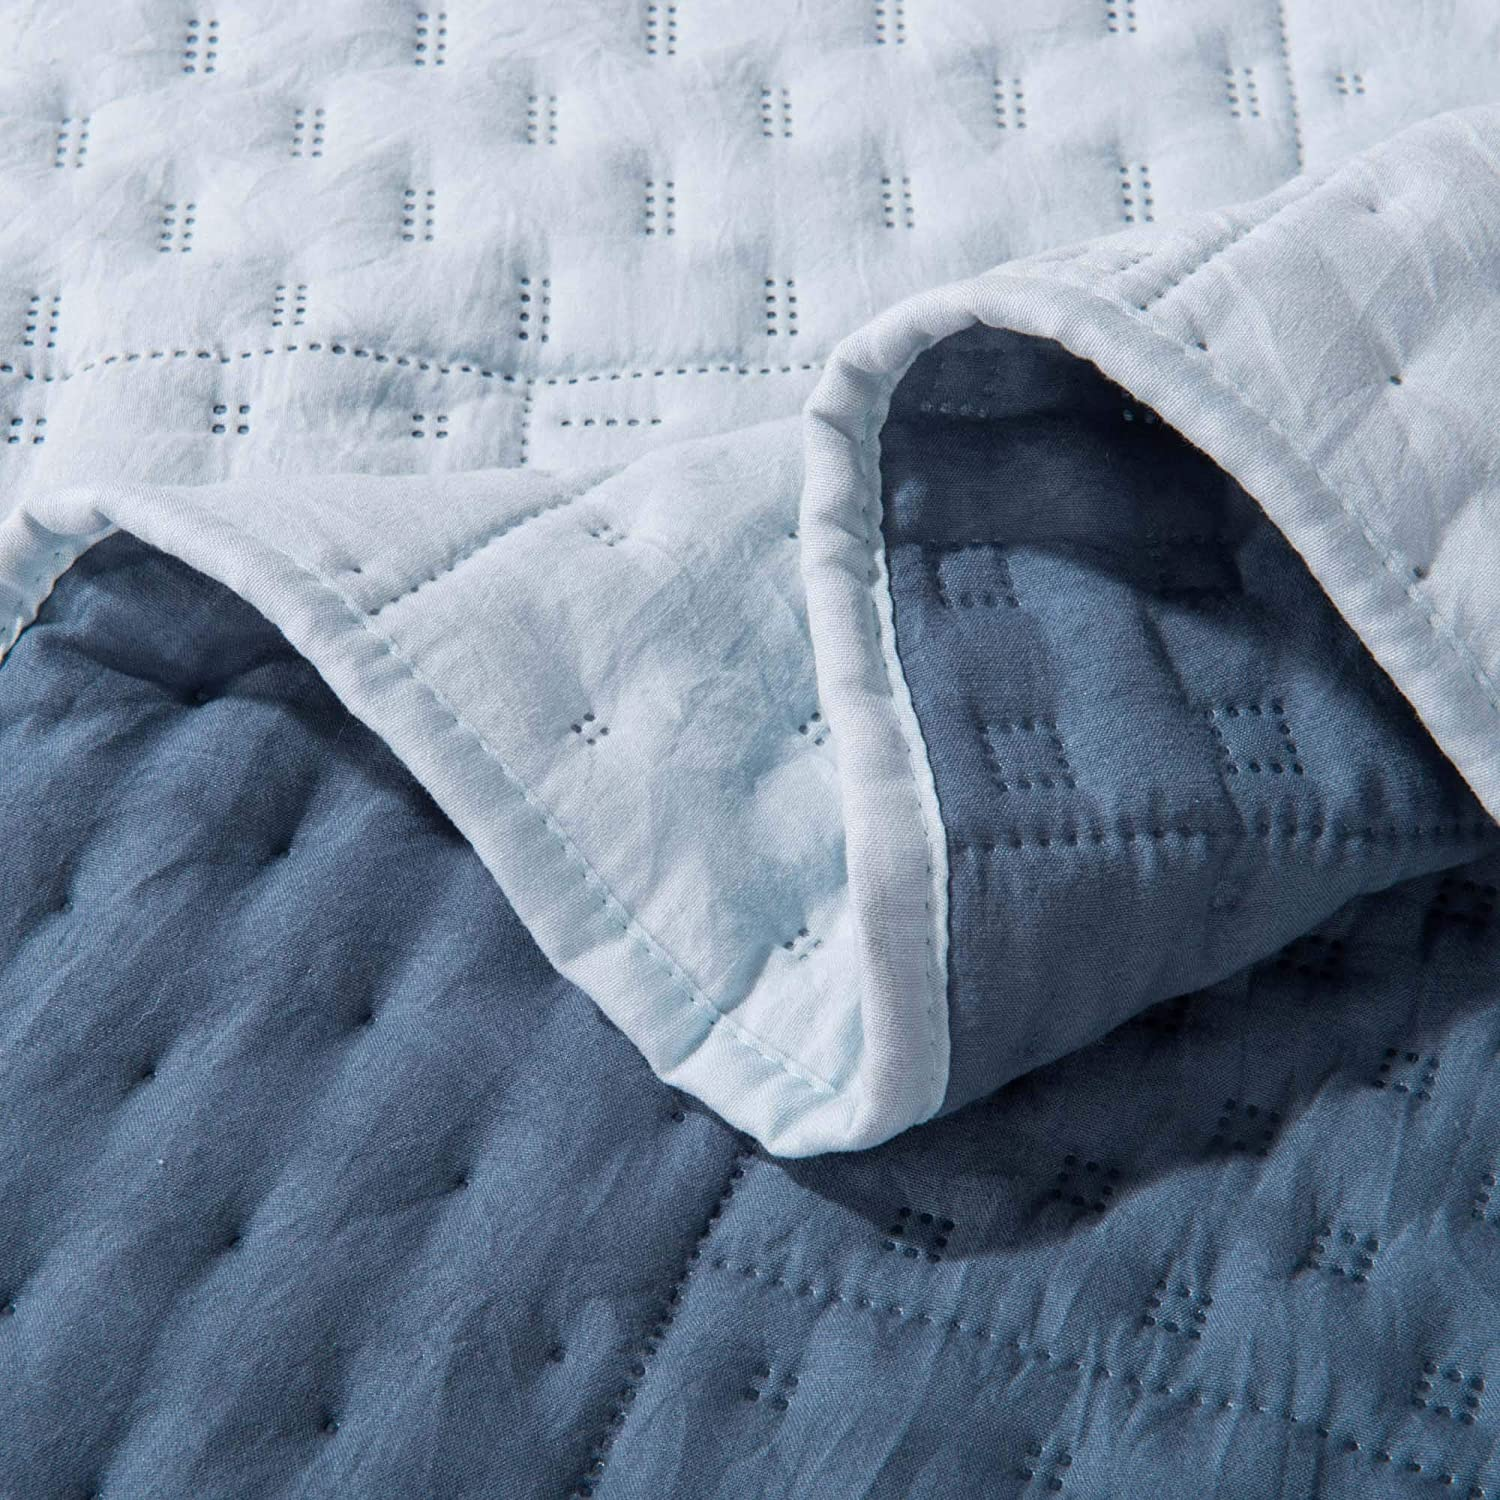 Fairest Gray//Sky Blue, Twin Set DOMDEC Super Soft Quilt Set 3 Piece Stone Washed Quilted Coverlet Set Light Weight Comforter Set Hypoallergenic Machine Washable